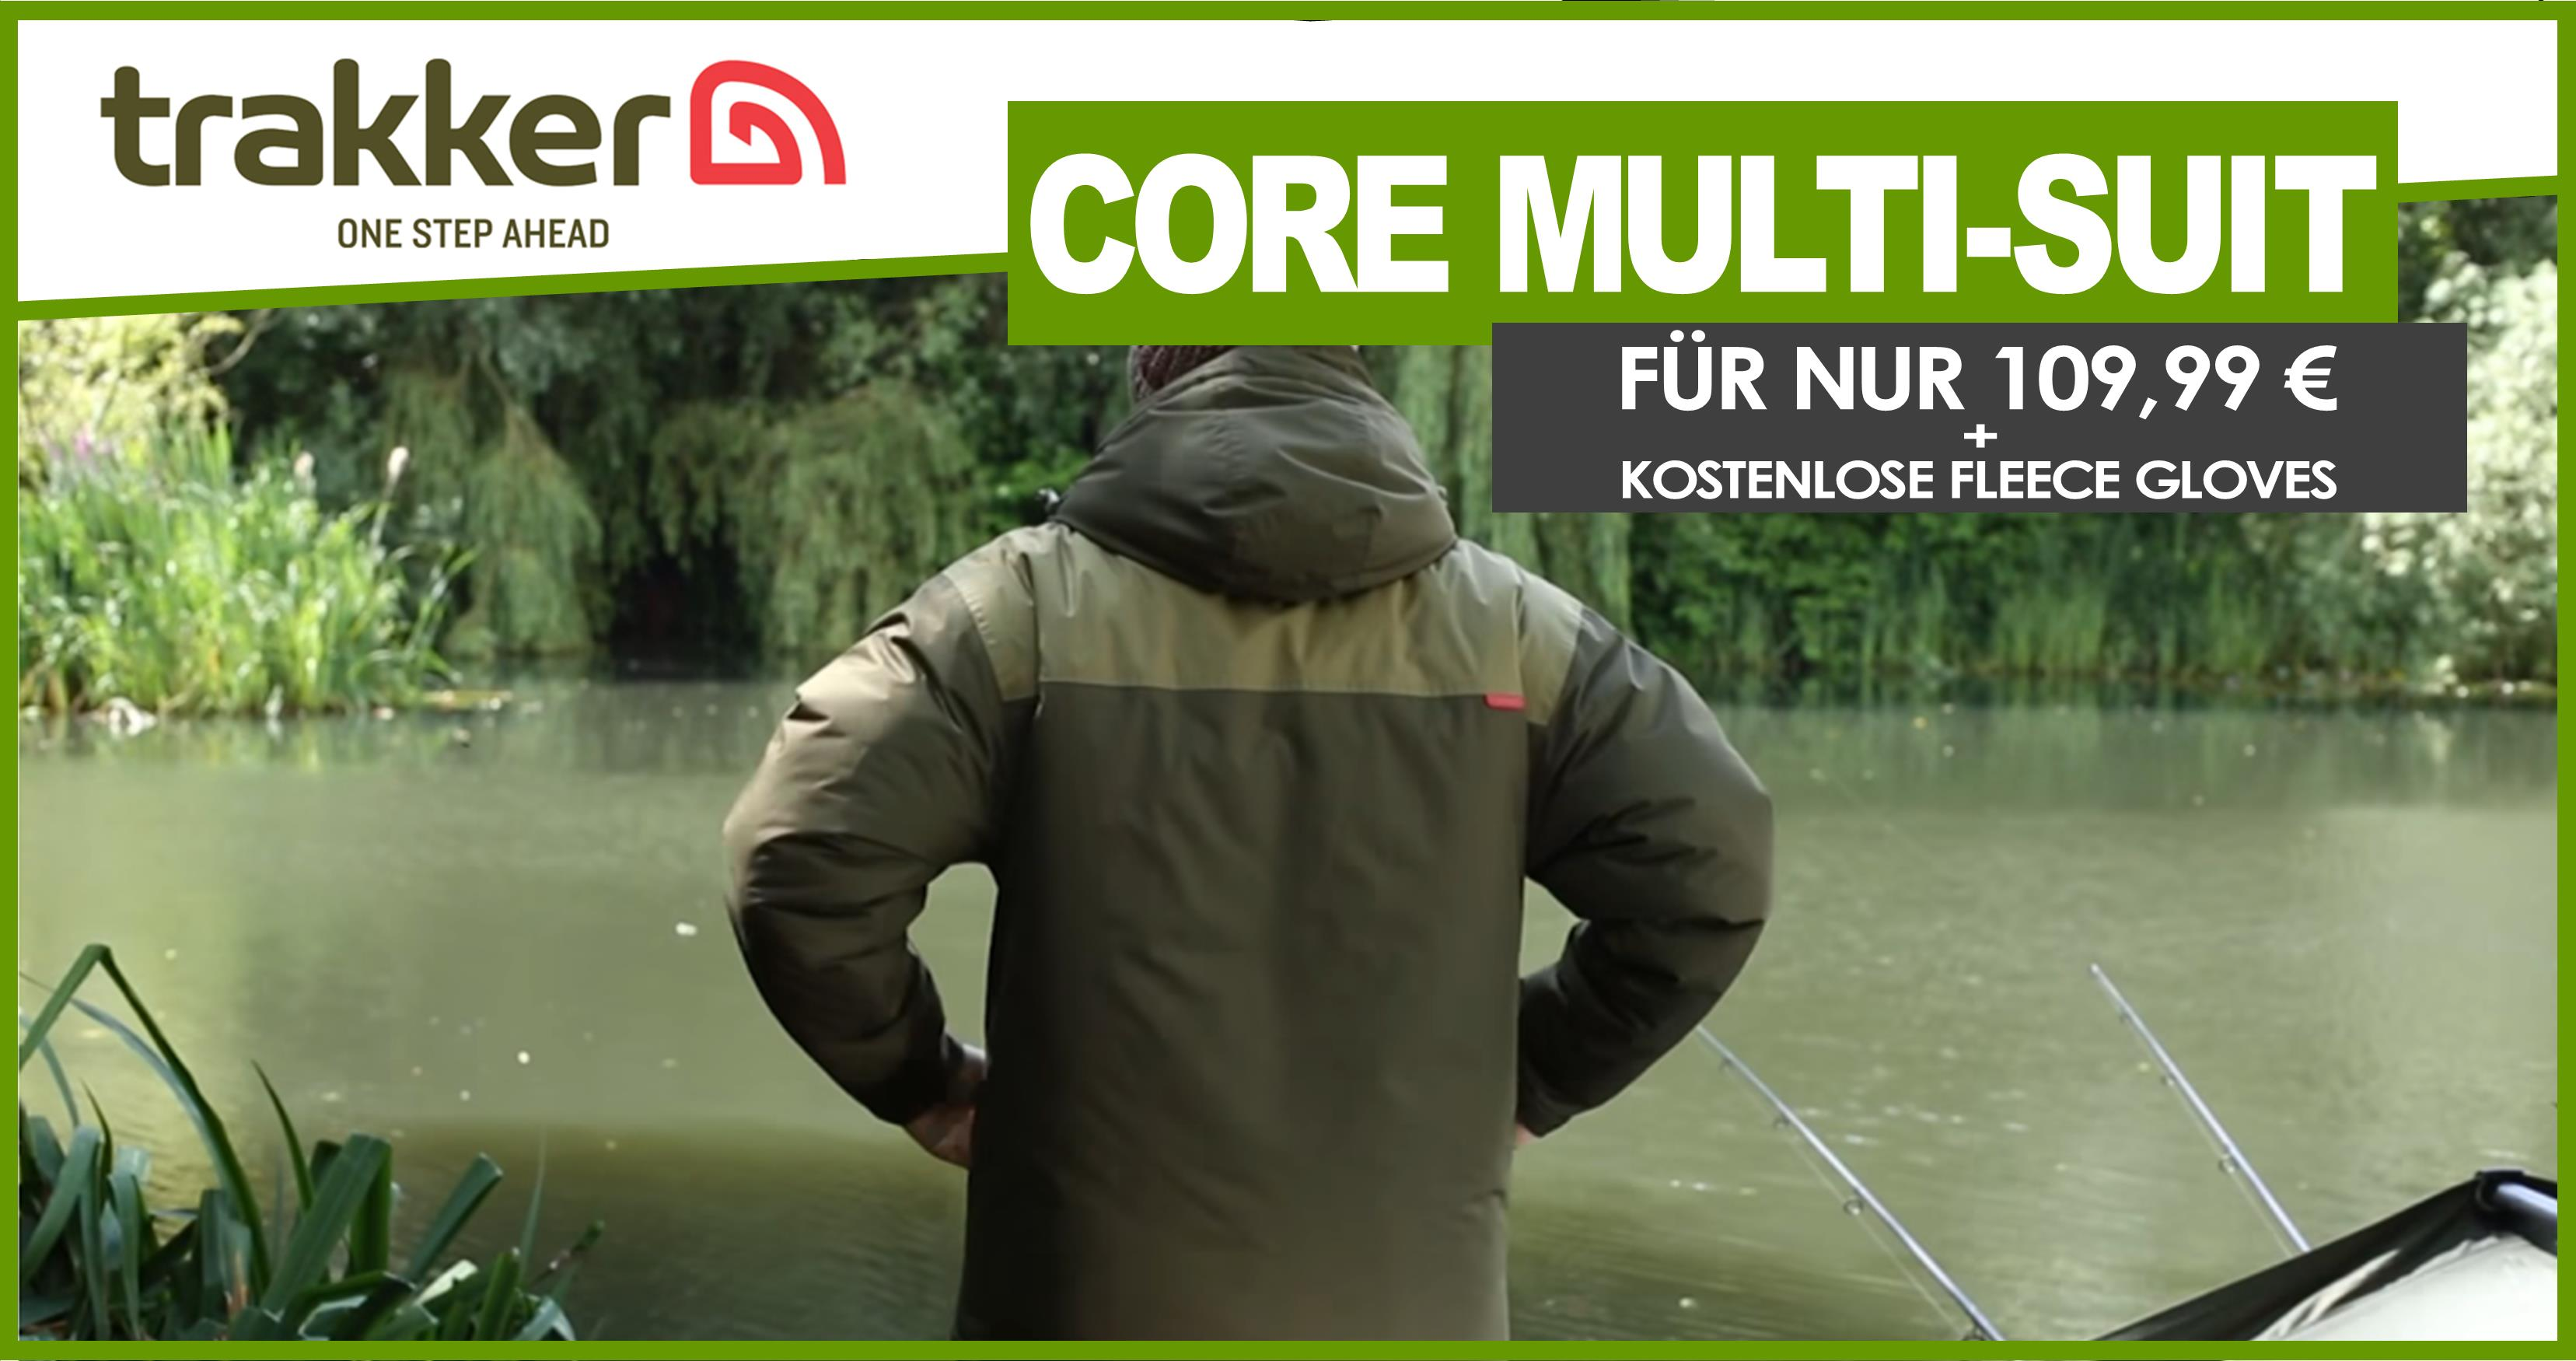 Trakker CORE MULTI-SUIT DEAL